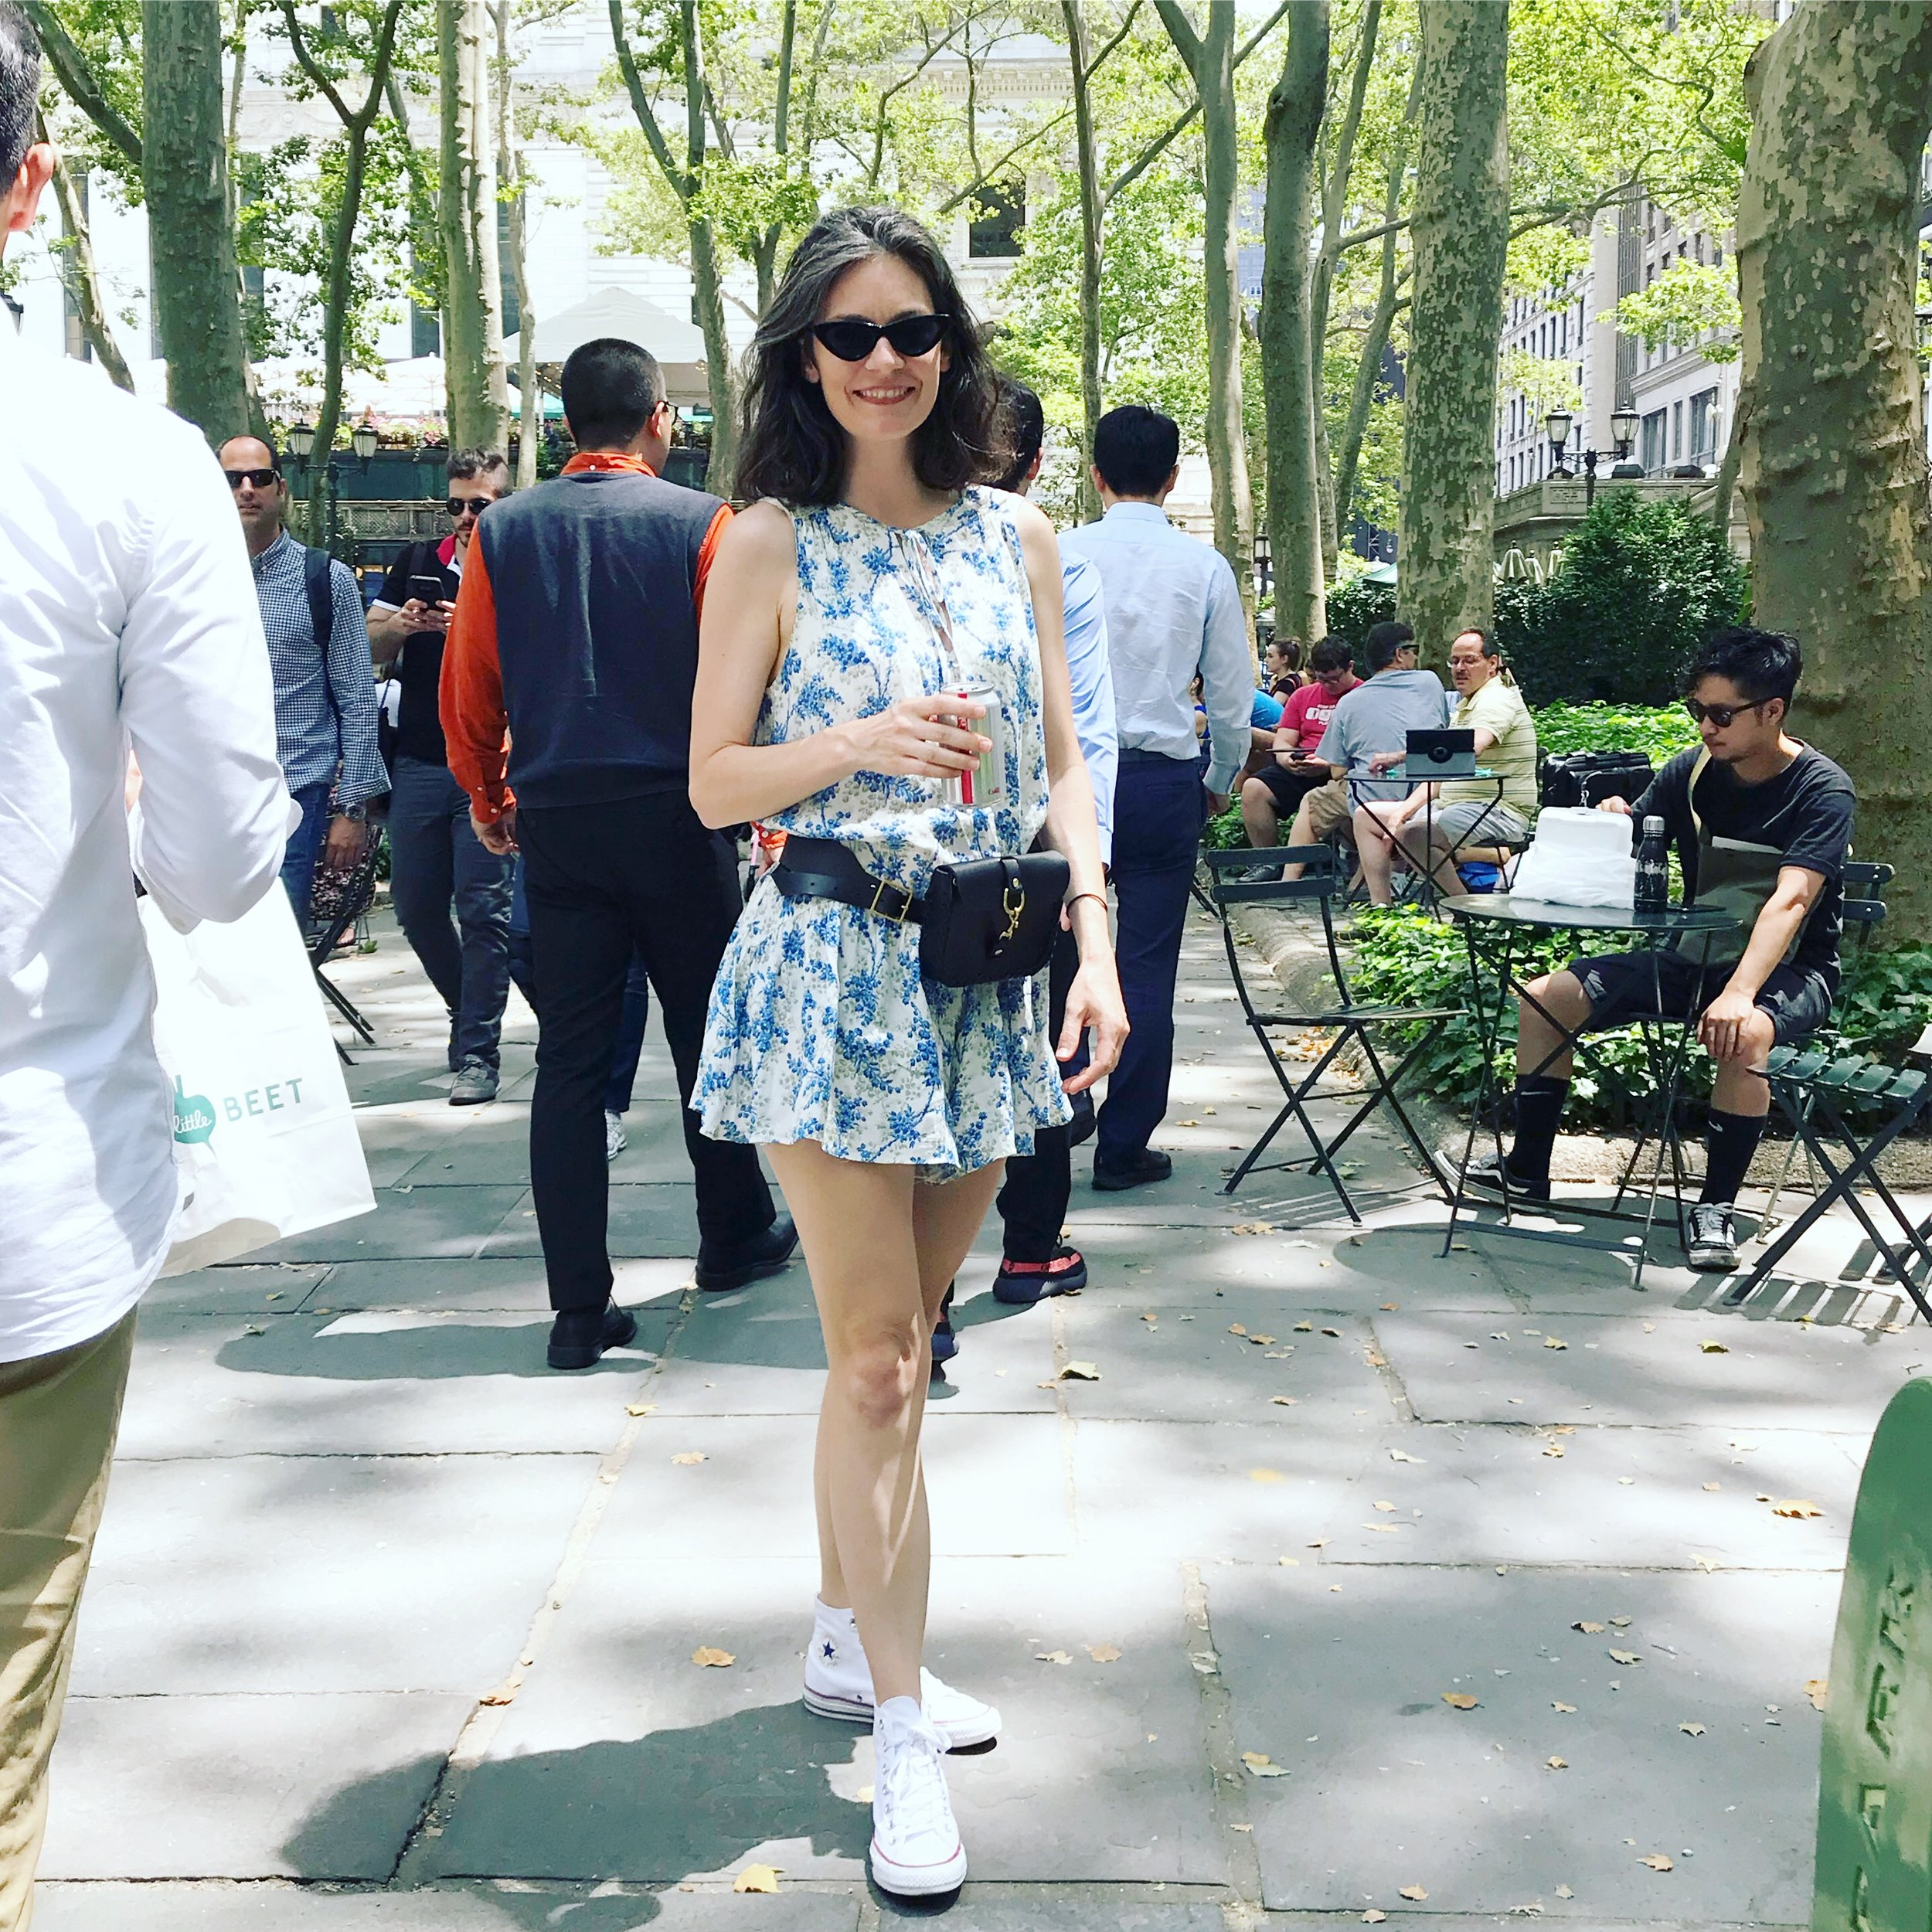 black leather belt bag by mary savel in Bryant park in new york city enjoying being hand free